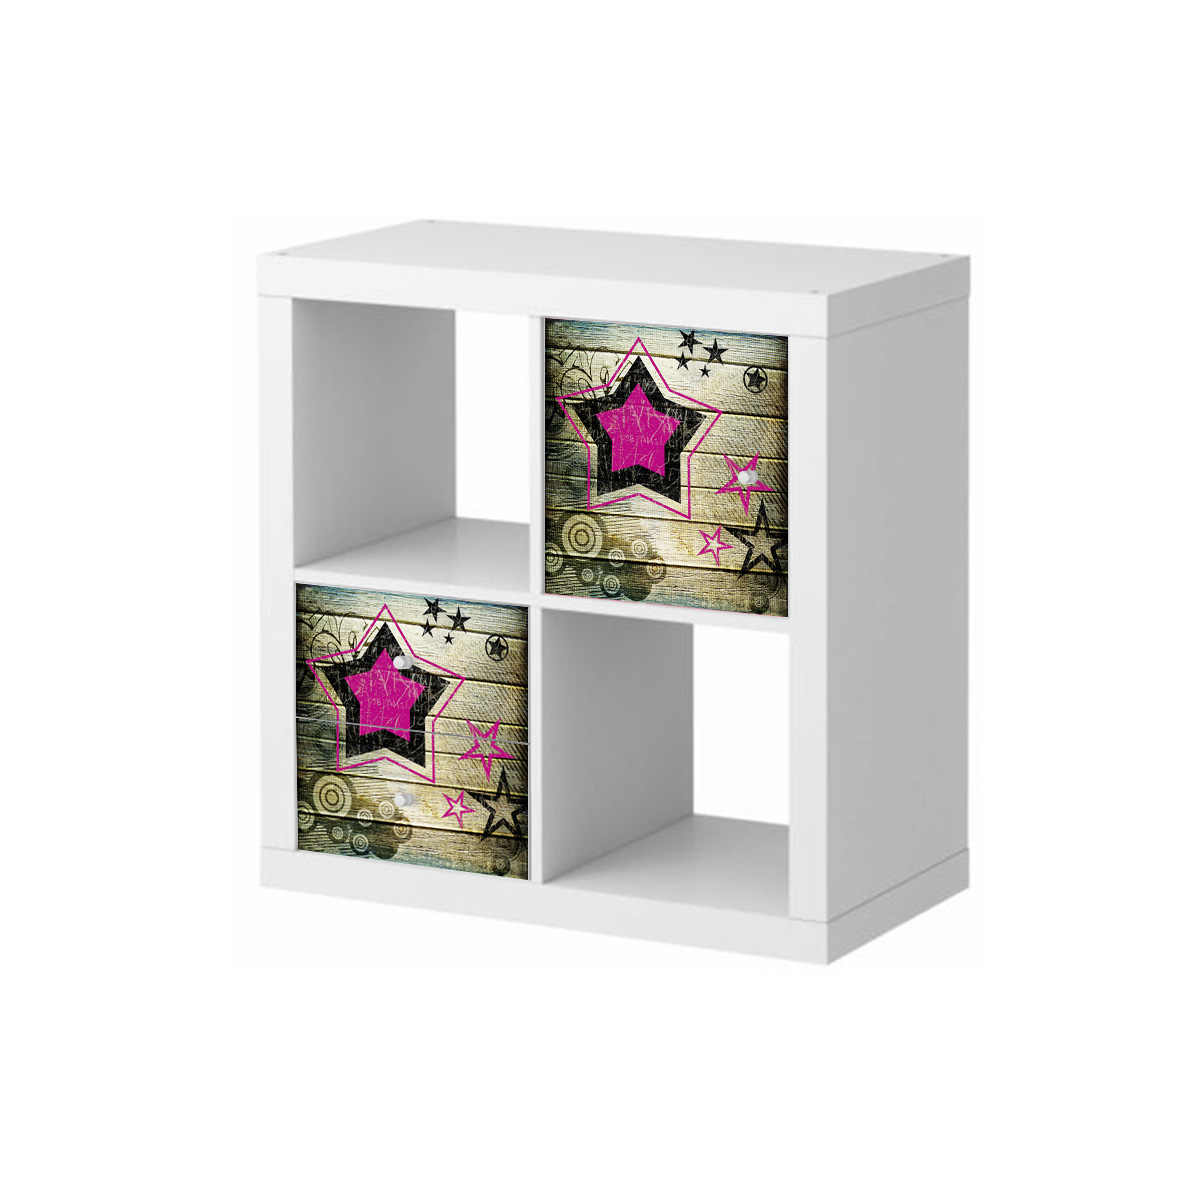 Stickers meubles ikea stickers meubles ikea style r tro ambiance - Stickers ikea meuble ...